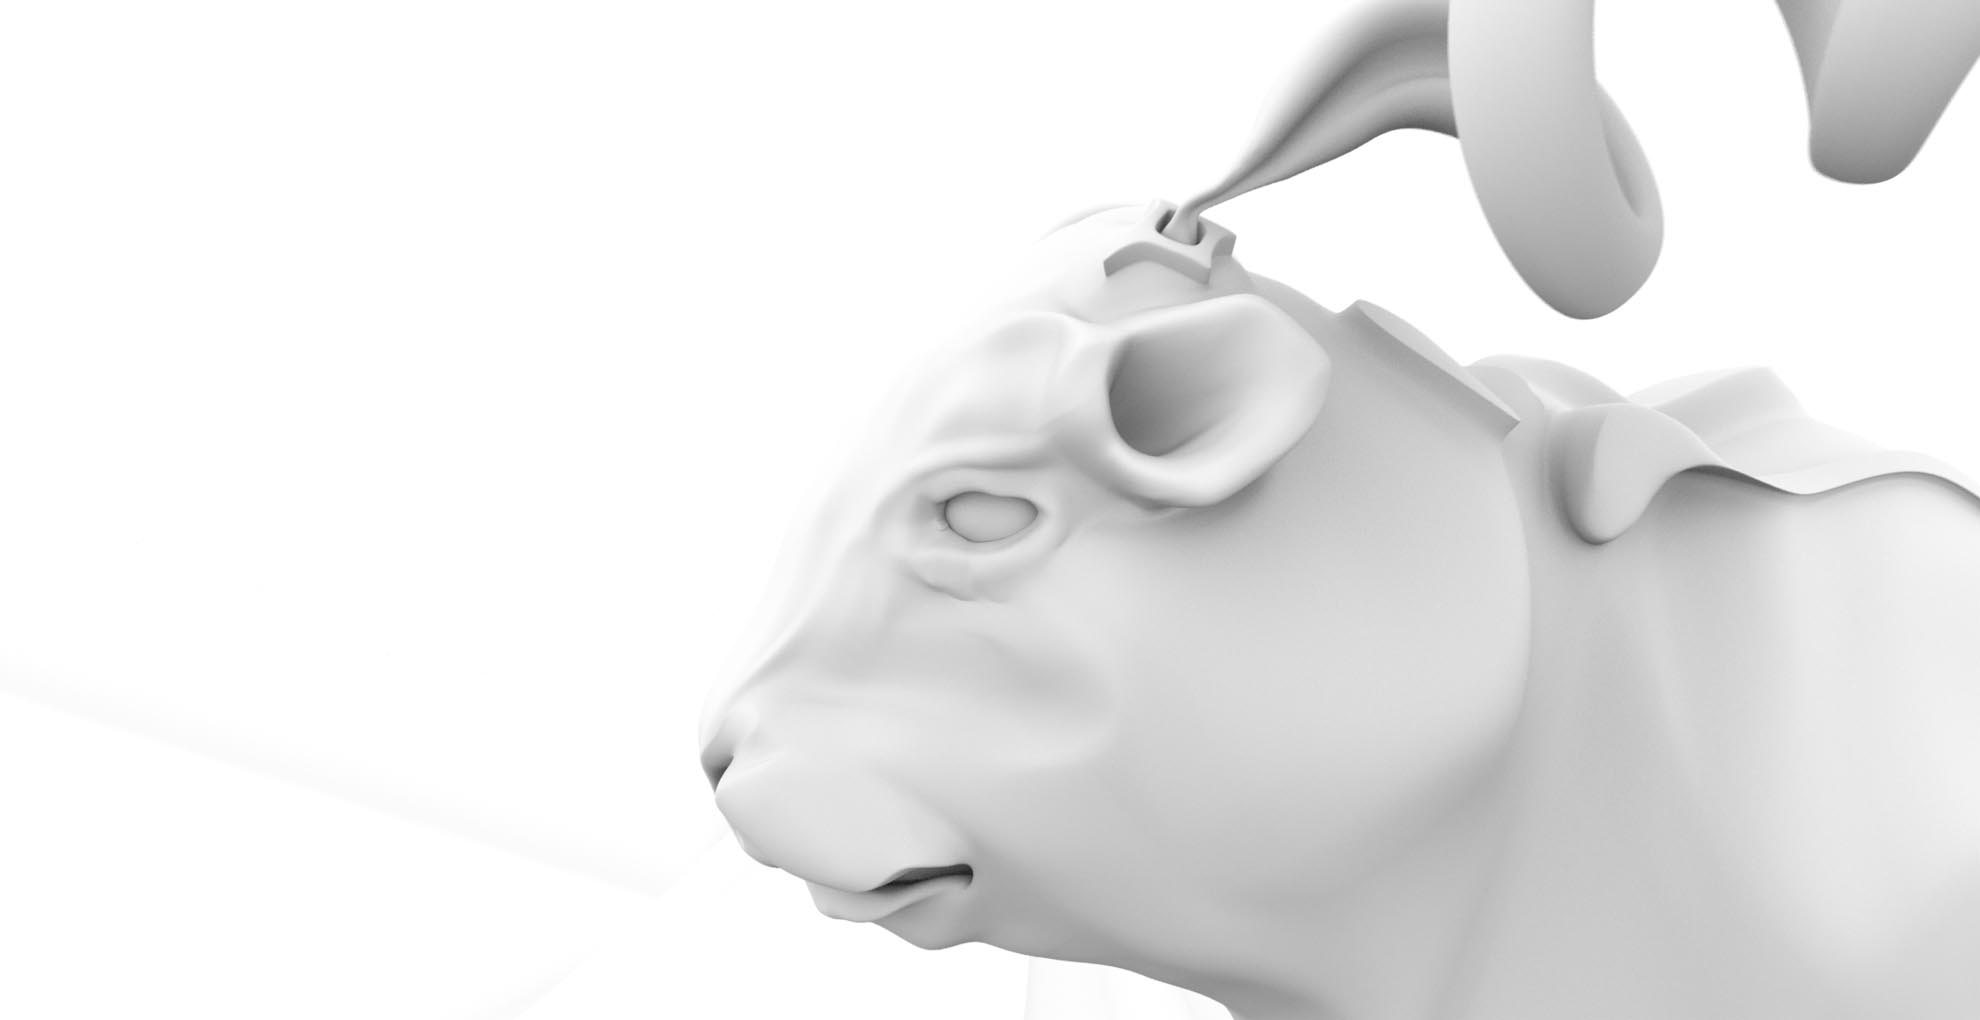 Cow_head_close_up_AO.jpg